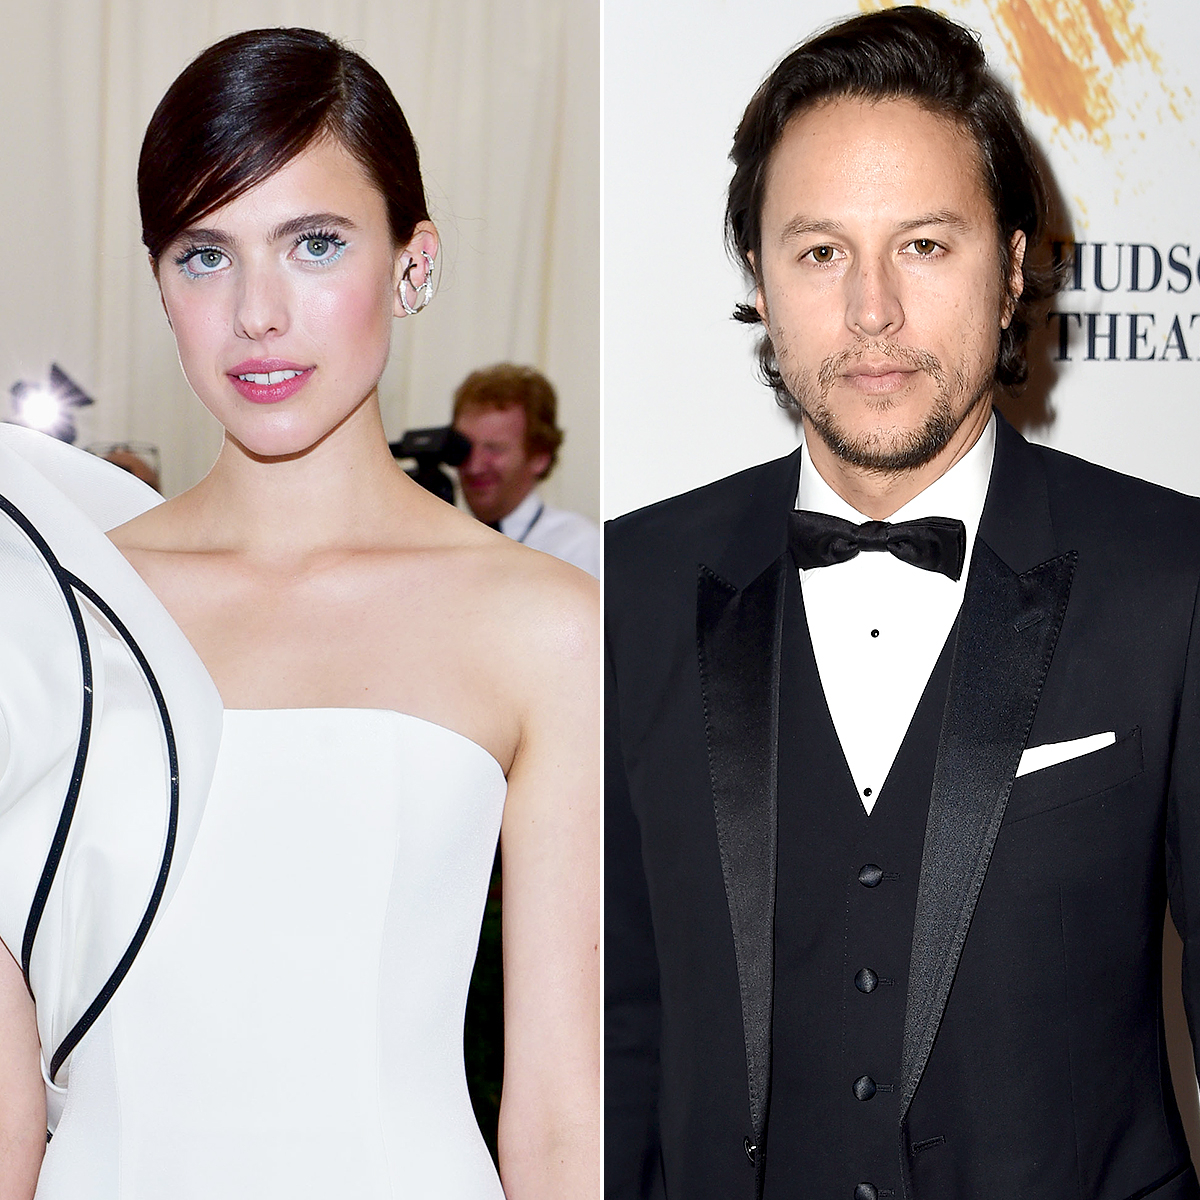 Margaret Qualley and Cary Joji Fukunaga